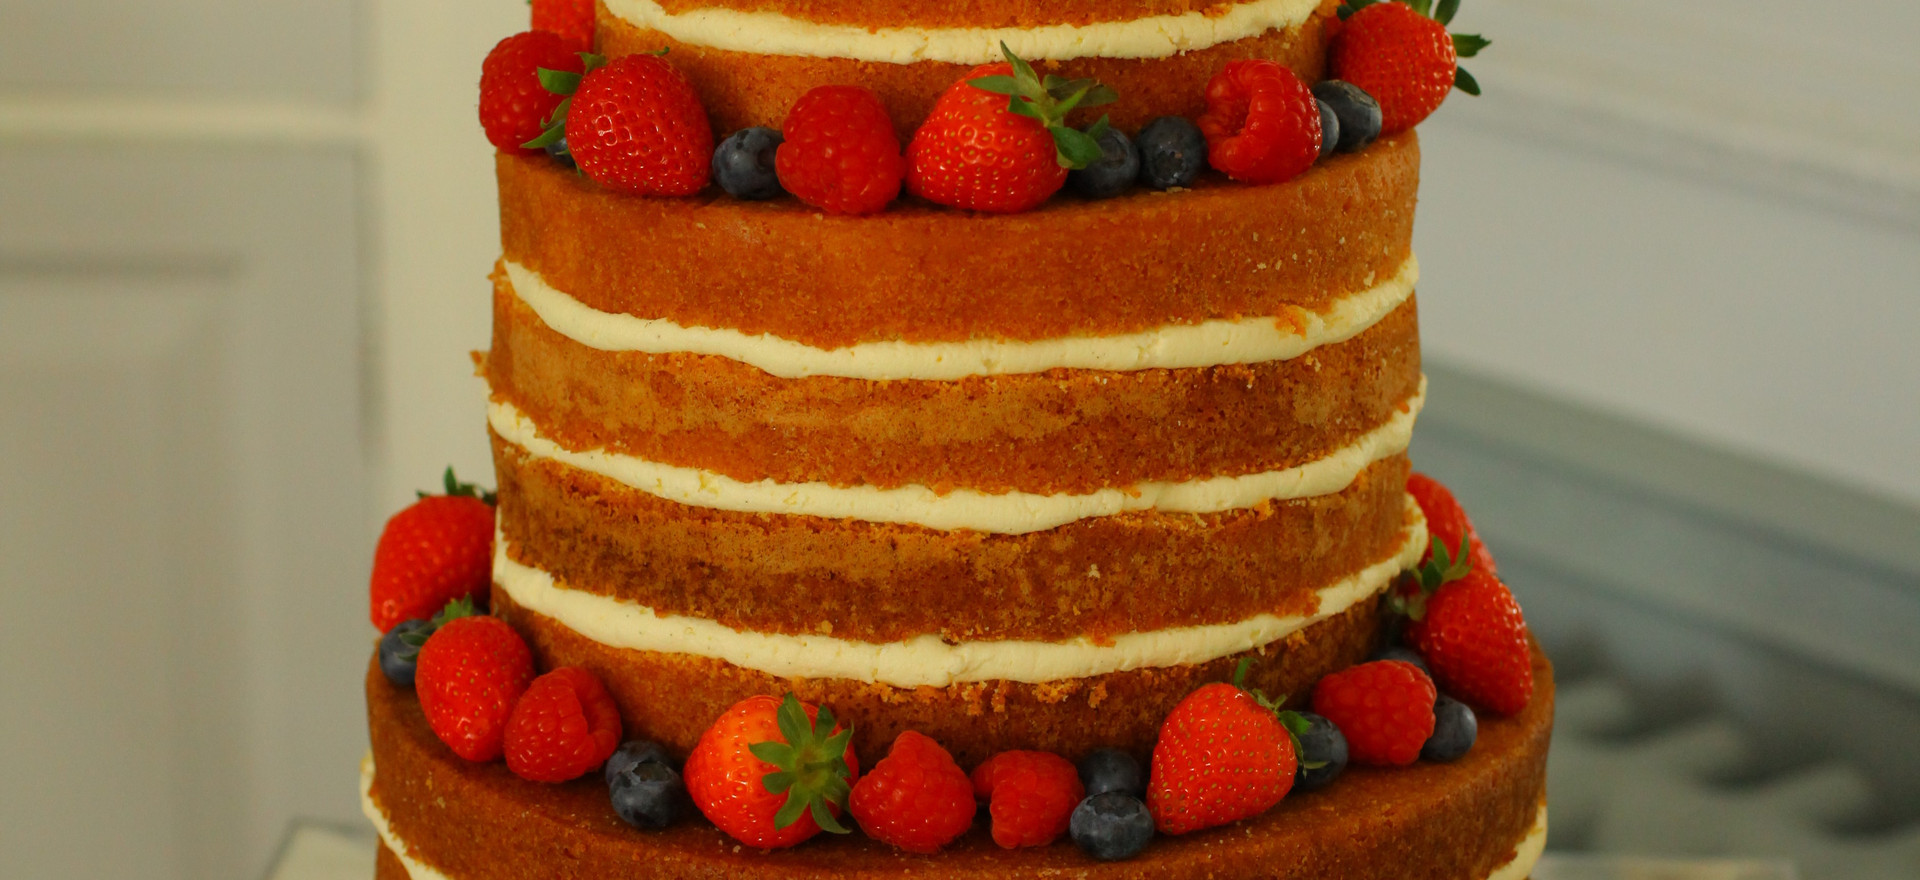 'Naked' cake with fresh summer fruits